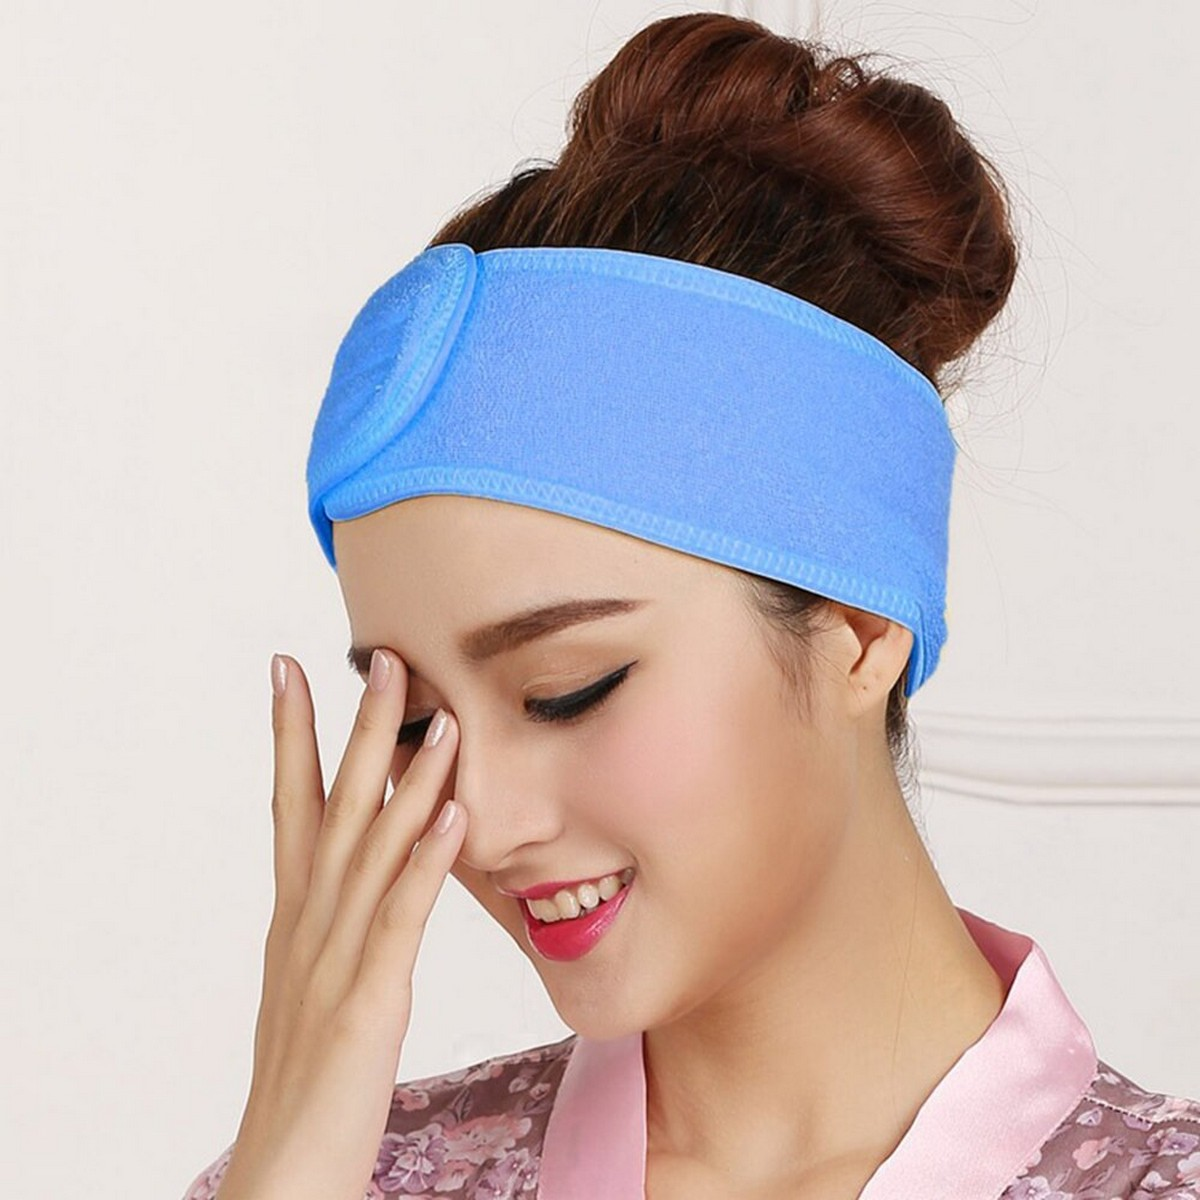 Spring Wavy Metal Hairband For Man/Woman Hair Metal Band Product By Shopping Addict